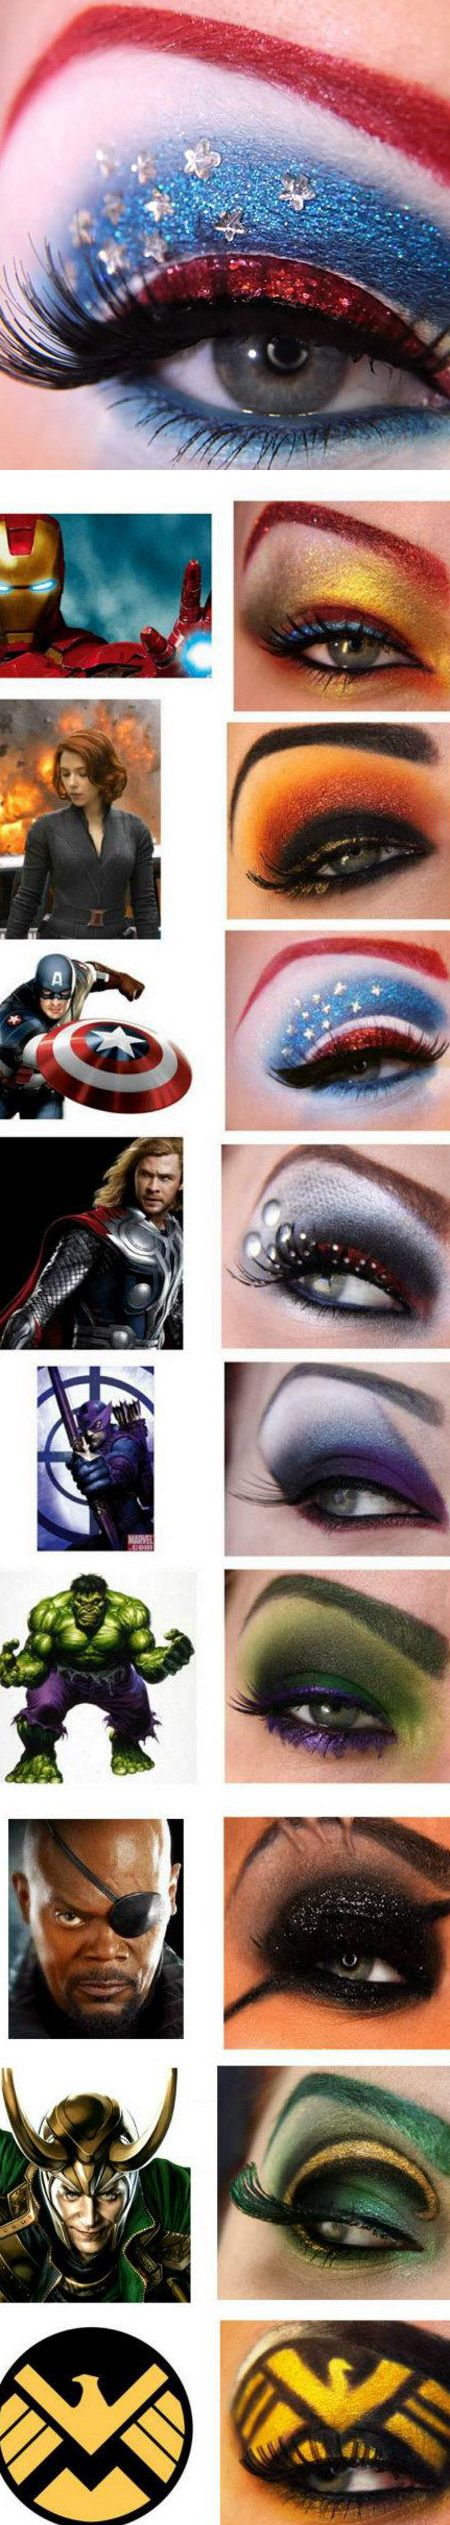 Avengers Costume Makeup - I put this under jokes because wow! Some people have way too much time on their hands. That and I thought how much my sister would like this and might actually accomplish some of these...